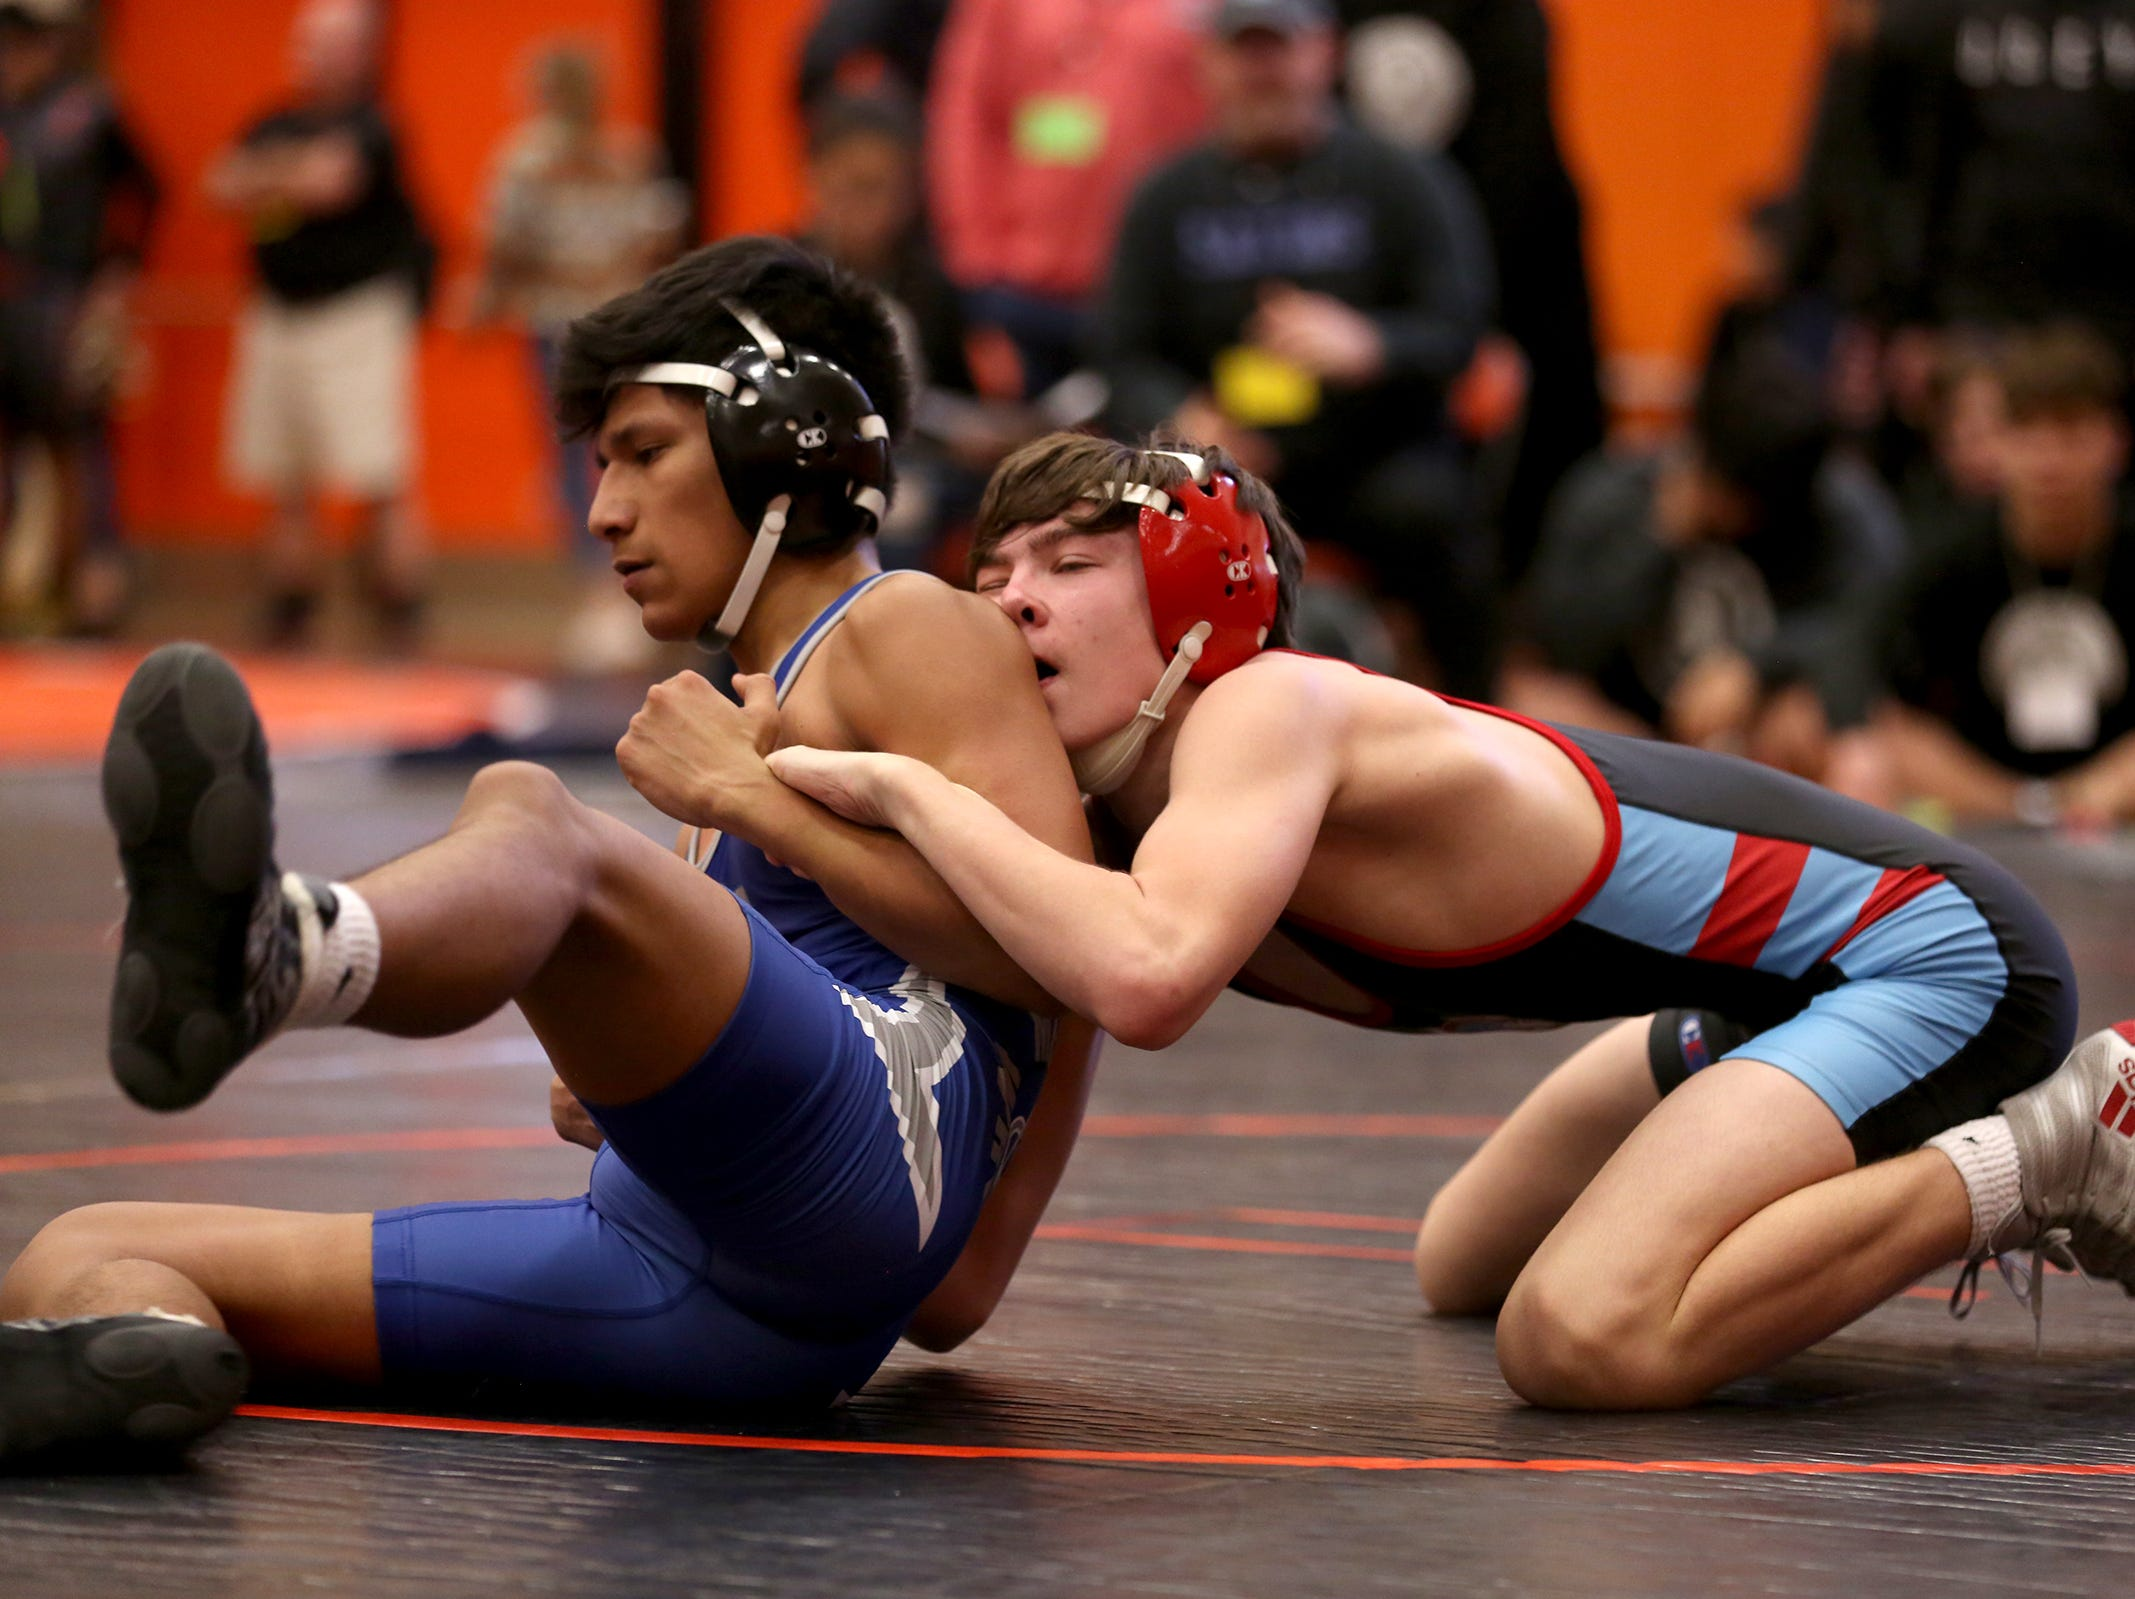 McNary's Daniel Hernandez and South Salem's Hunter Harrison (right) compete in the 126 pound weight class during the Mountain Valley Conference district wrestling tournament at Sprague High School in Salem on Friday, Feb. 15, 2019.